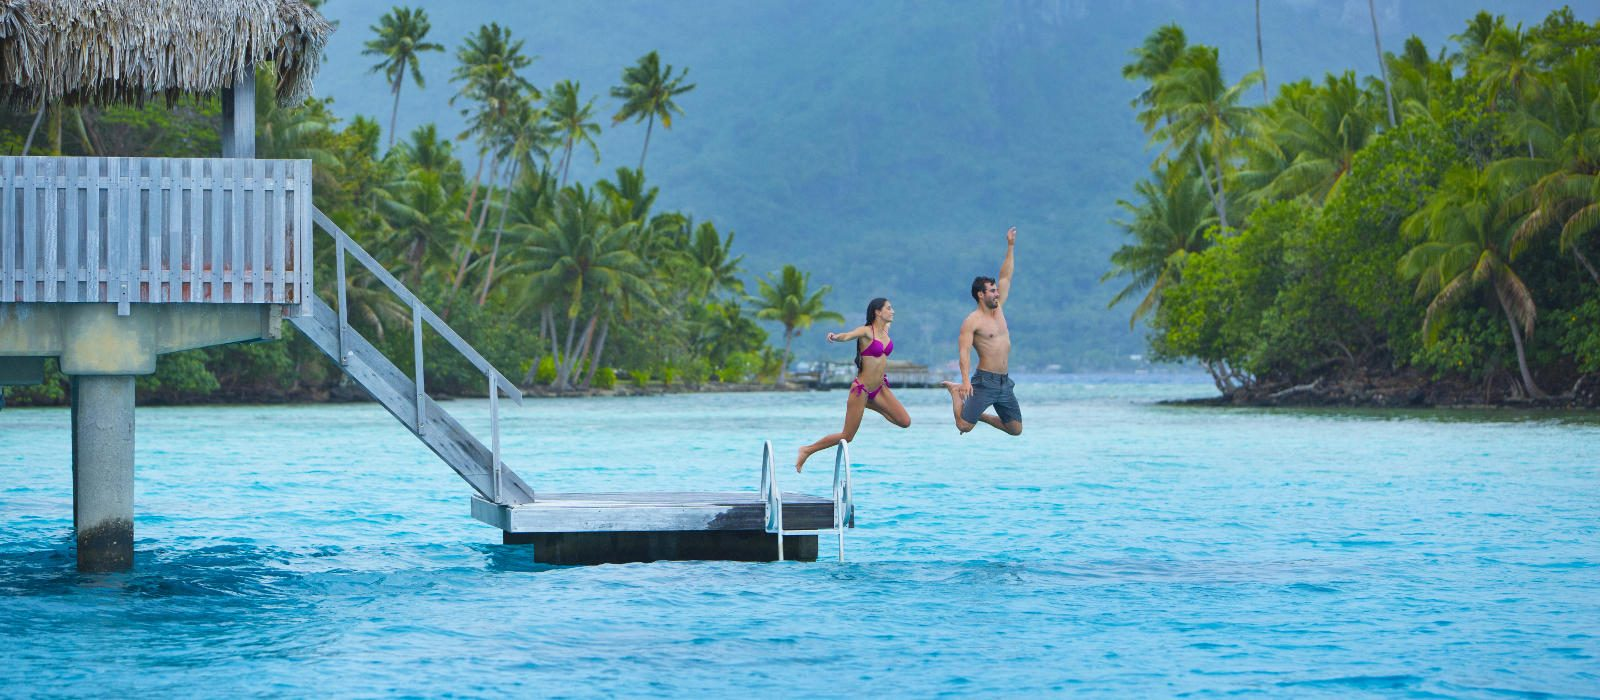 custom vacations created by expert travel advisros living in Tahiti